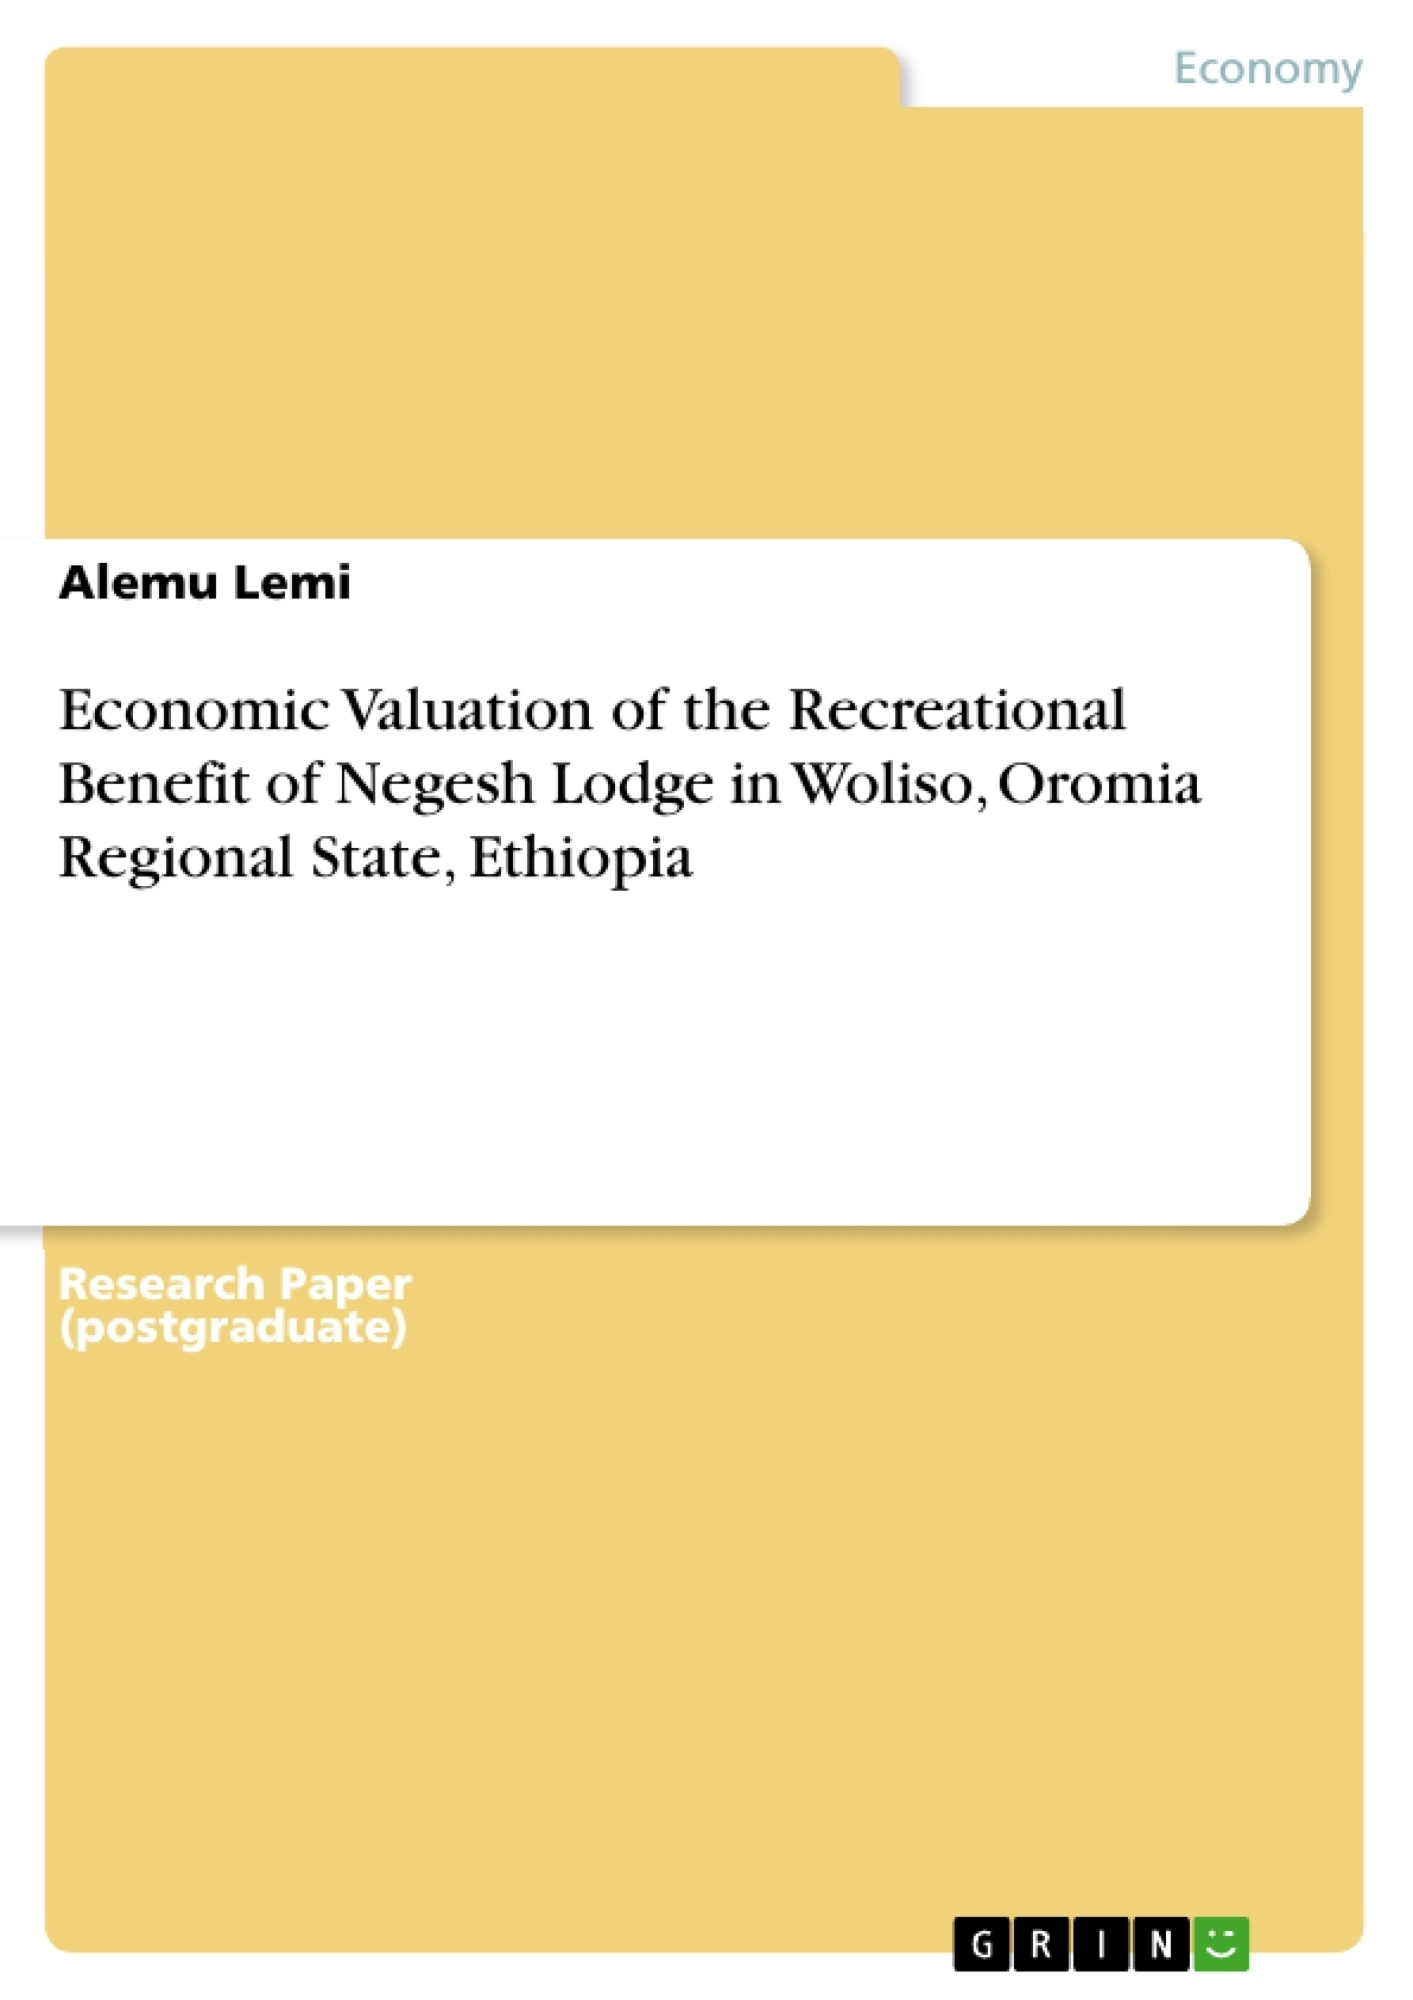 Title: Economic Valuation of the Recreational Benefit of Negesh Lodge in Woliso, Oromia Regional State, Ethiopia